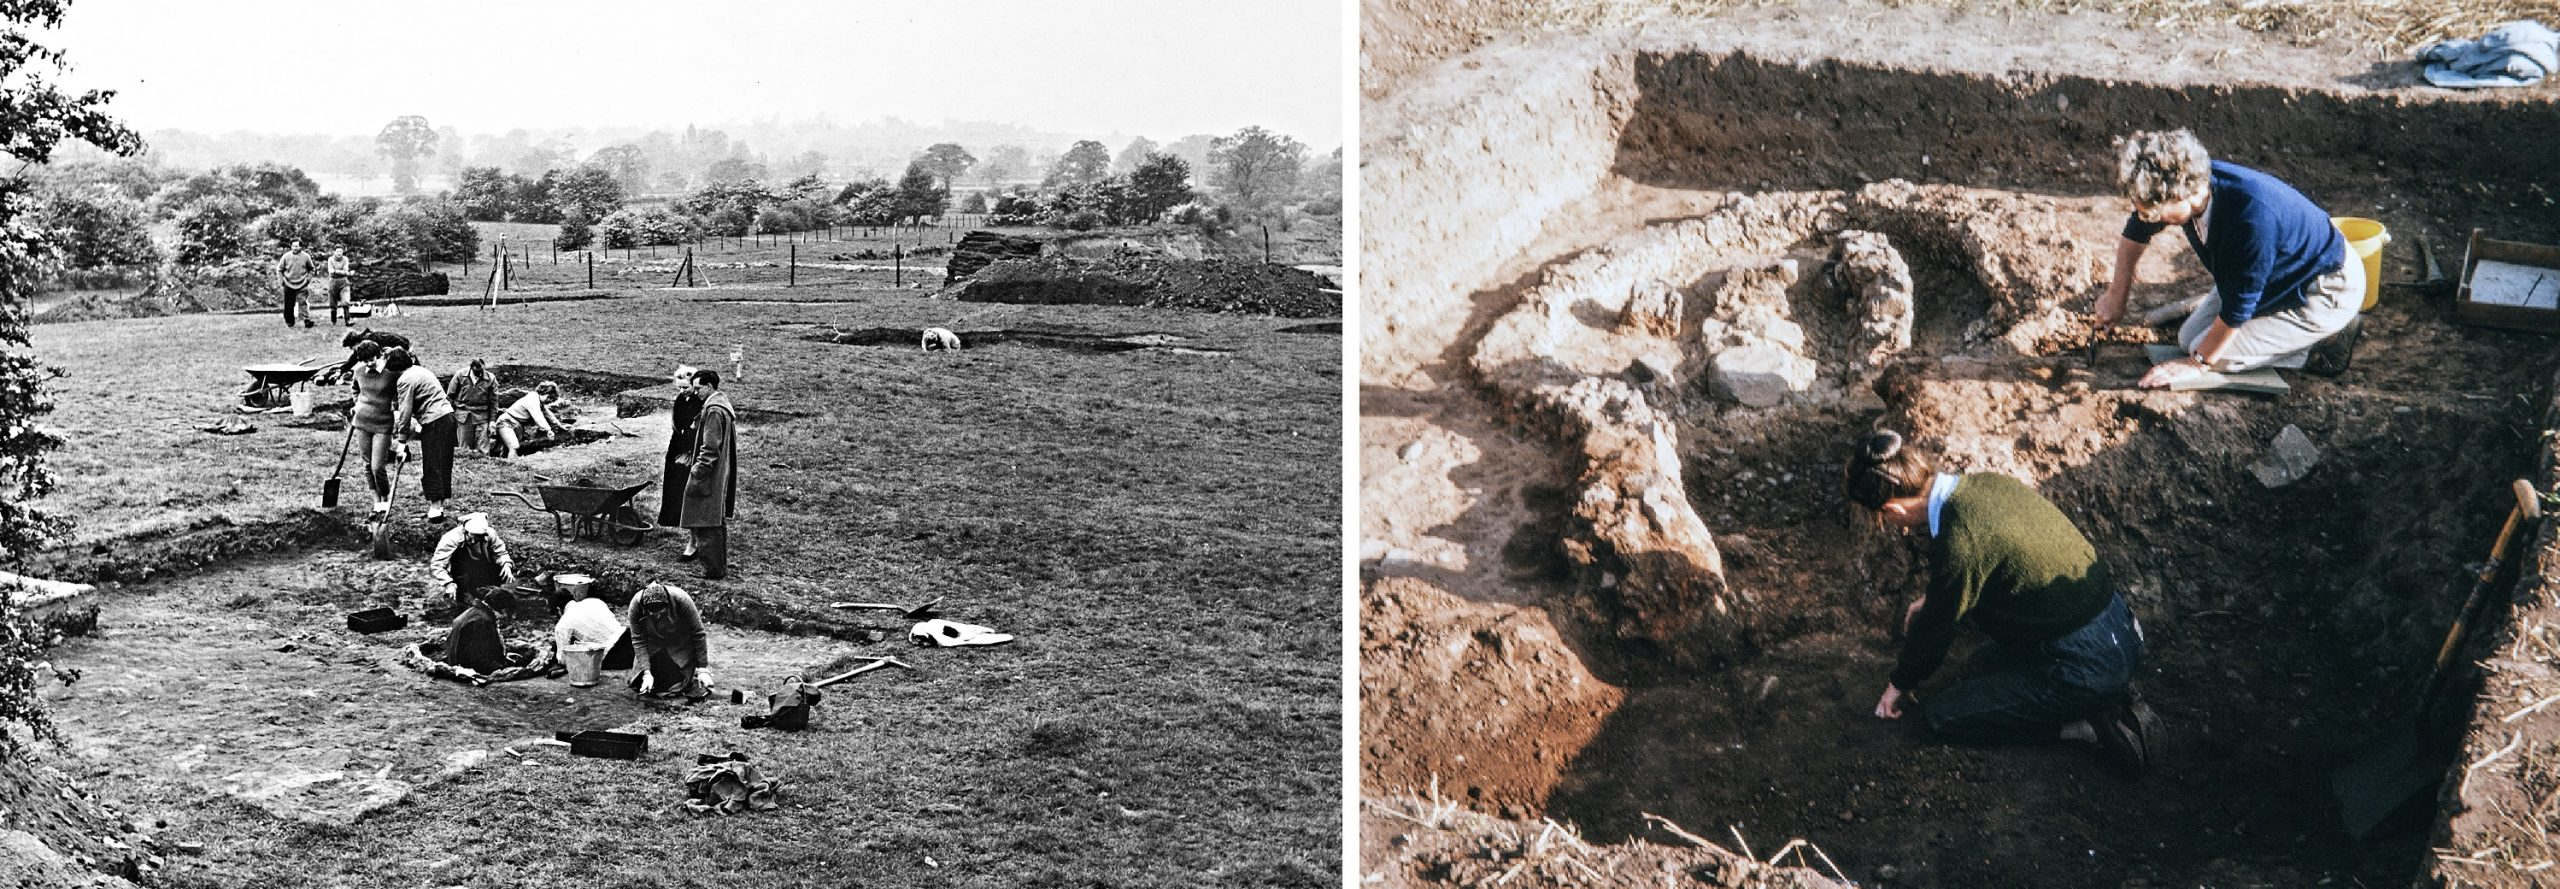 Mancetter-Hartshill excavation photos